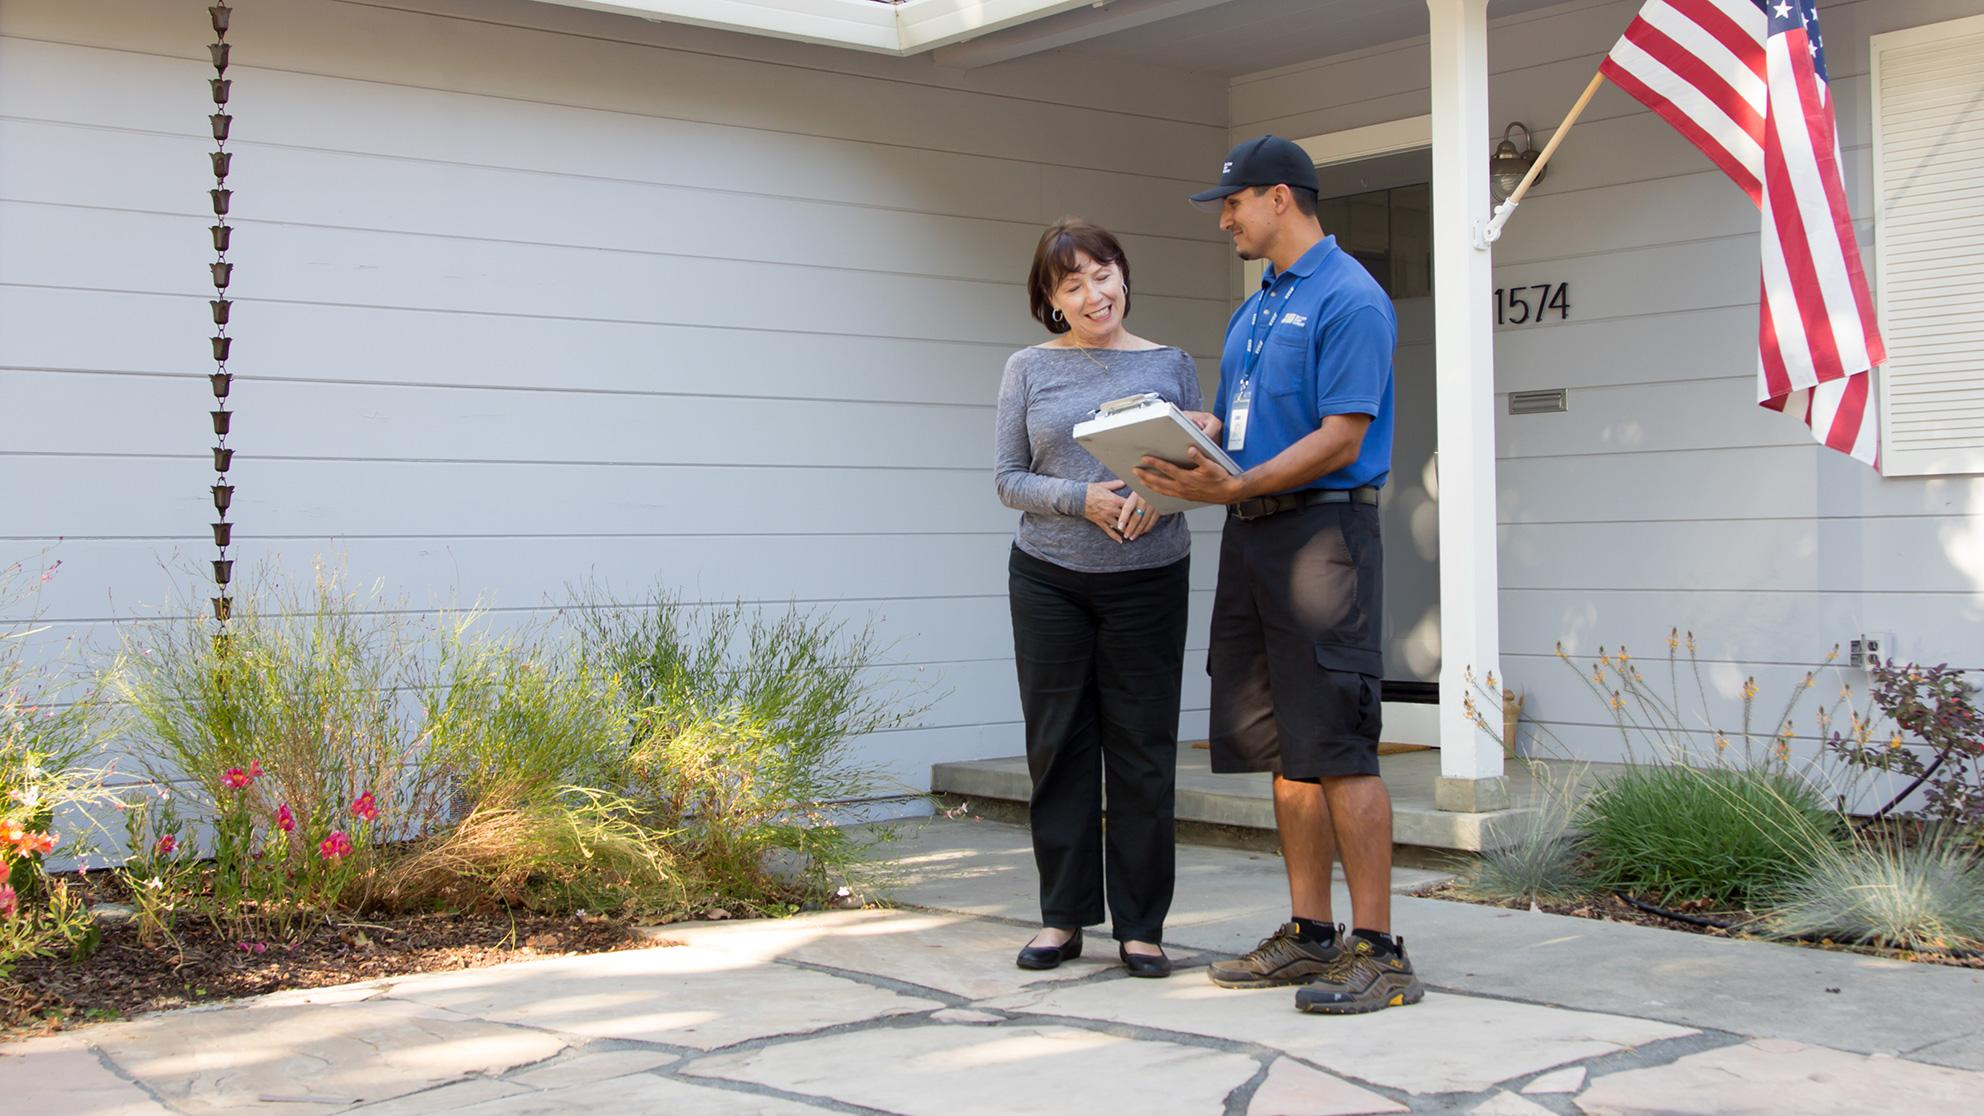 San Jose Water Worker and Customer talk outside a home